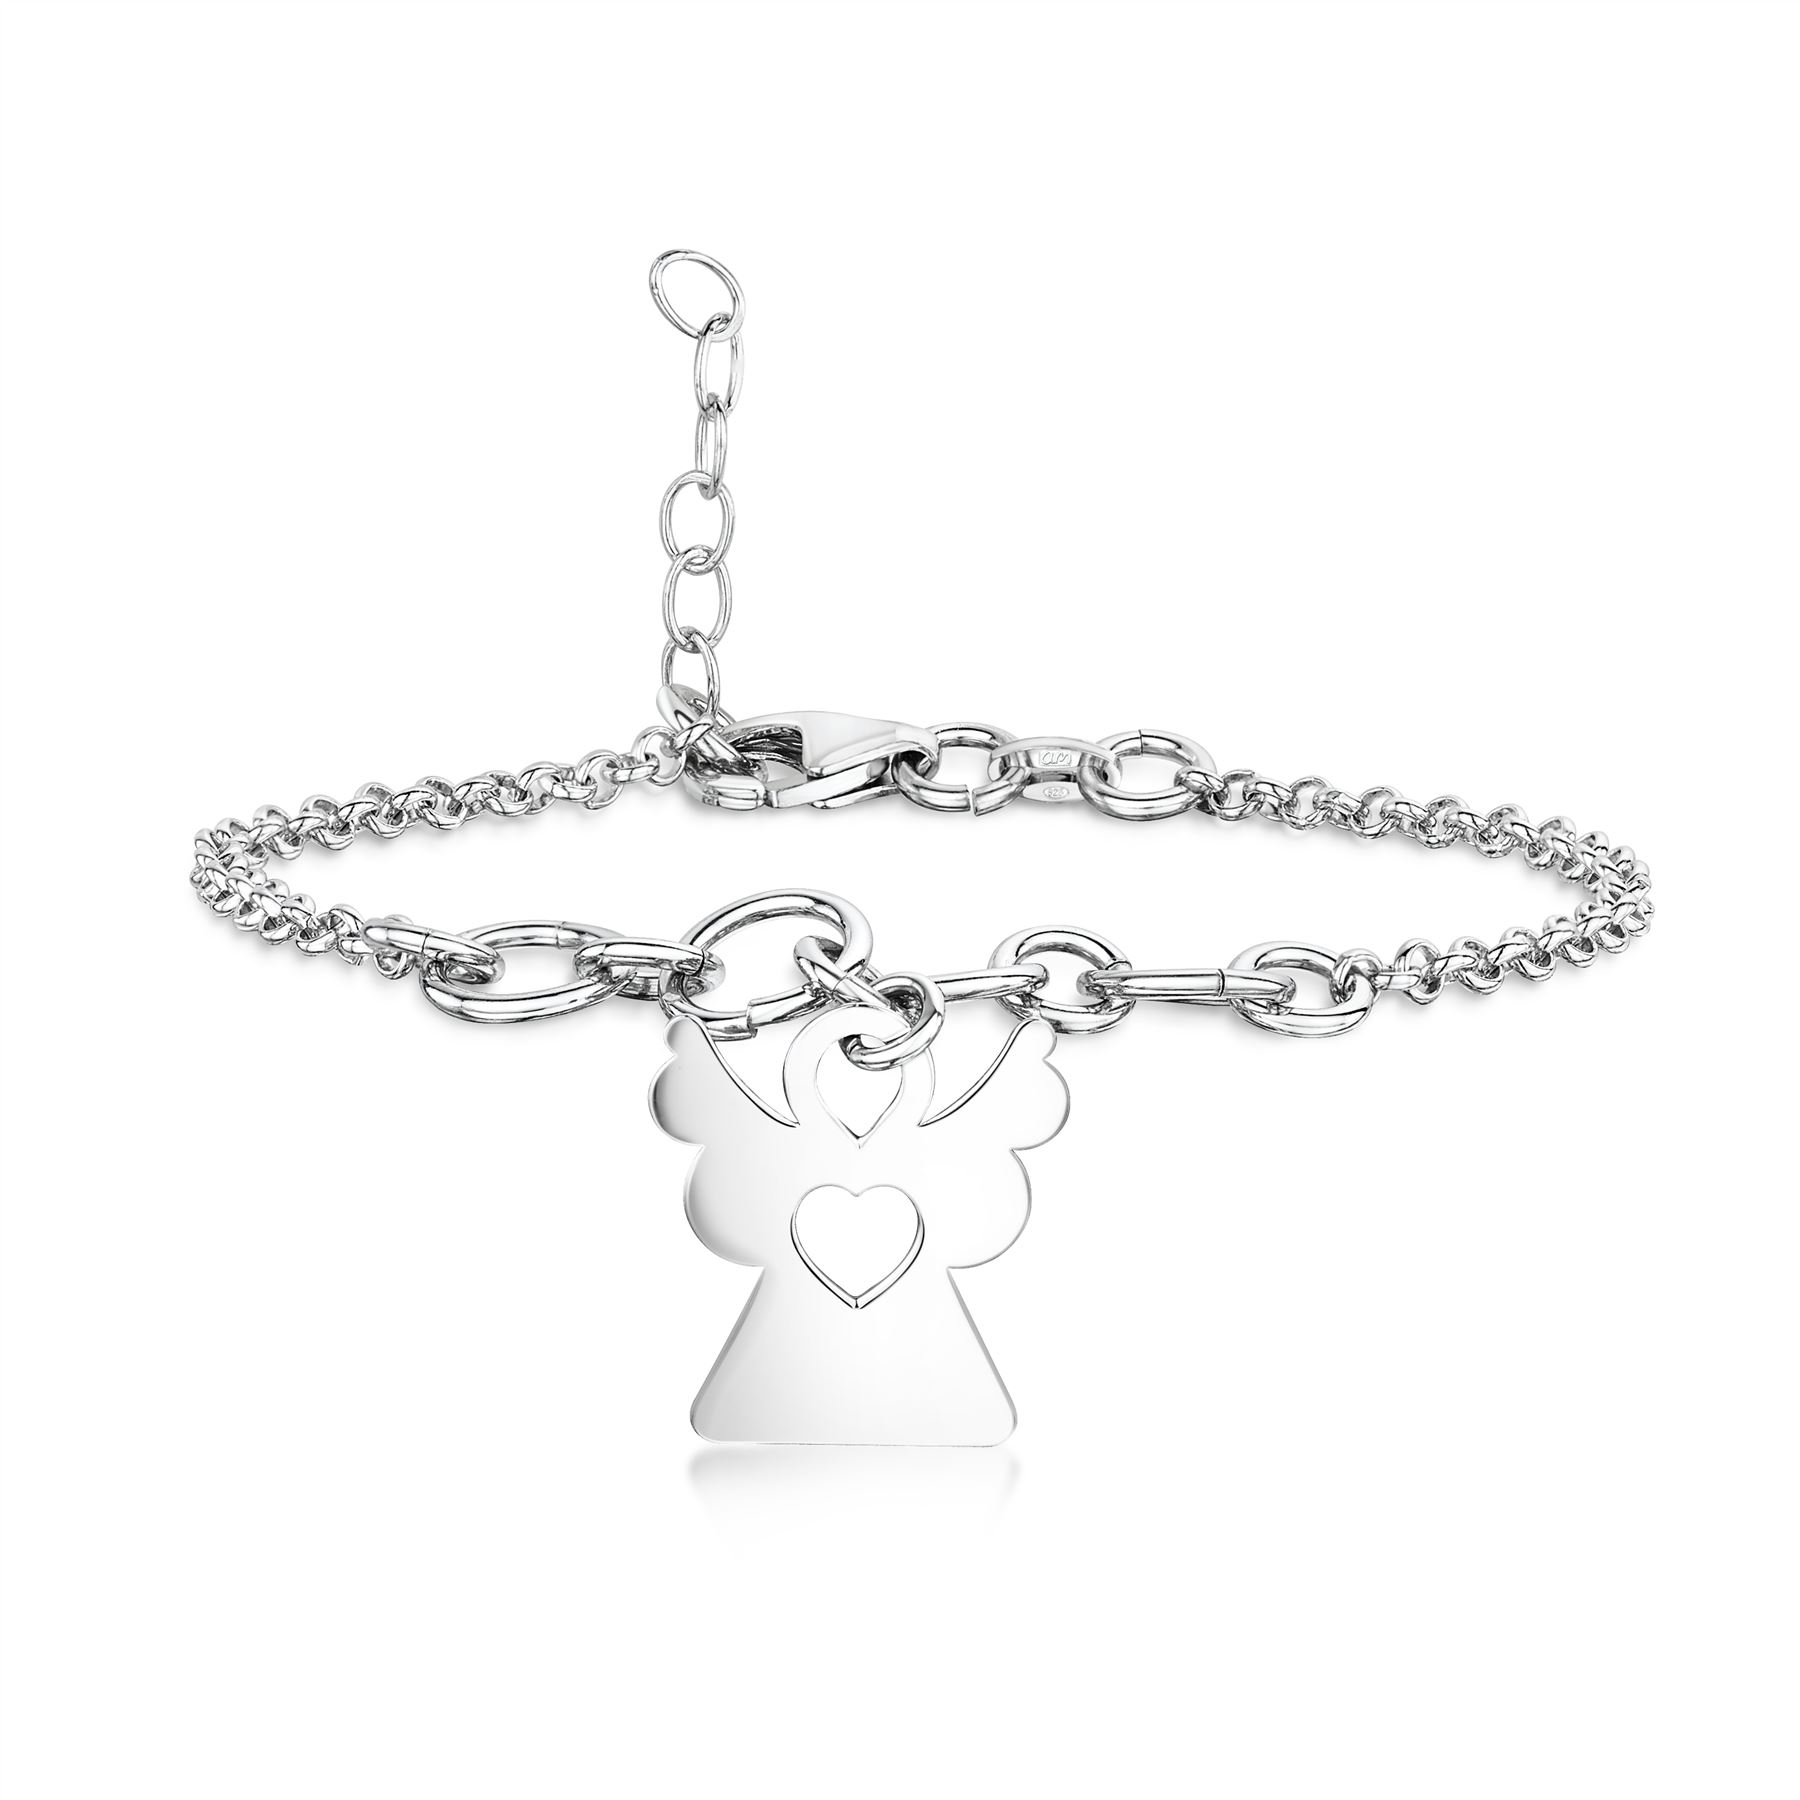 Amberta-Jewelry-925-Sterling-Silver-Adjustable-Anklet-for-Women-Made-in-Italy miniature 51